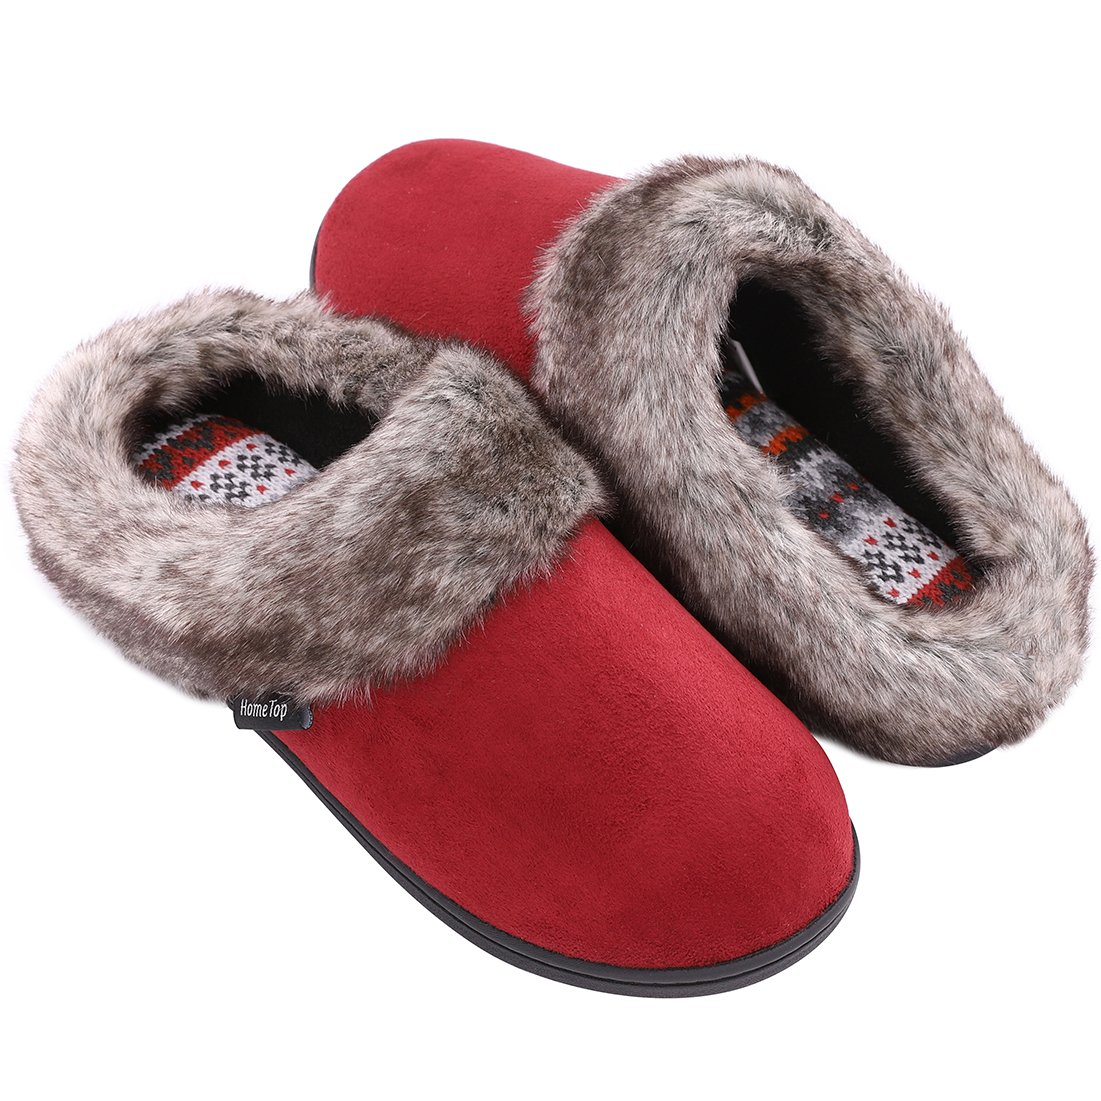 c1d923bd0 Ladies' Furry Memory Foam Slippers Micro Suede Faux Fur House Shoes with  Yarn Knit Lining